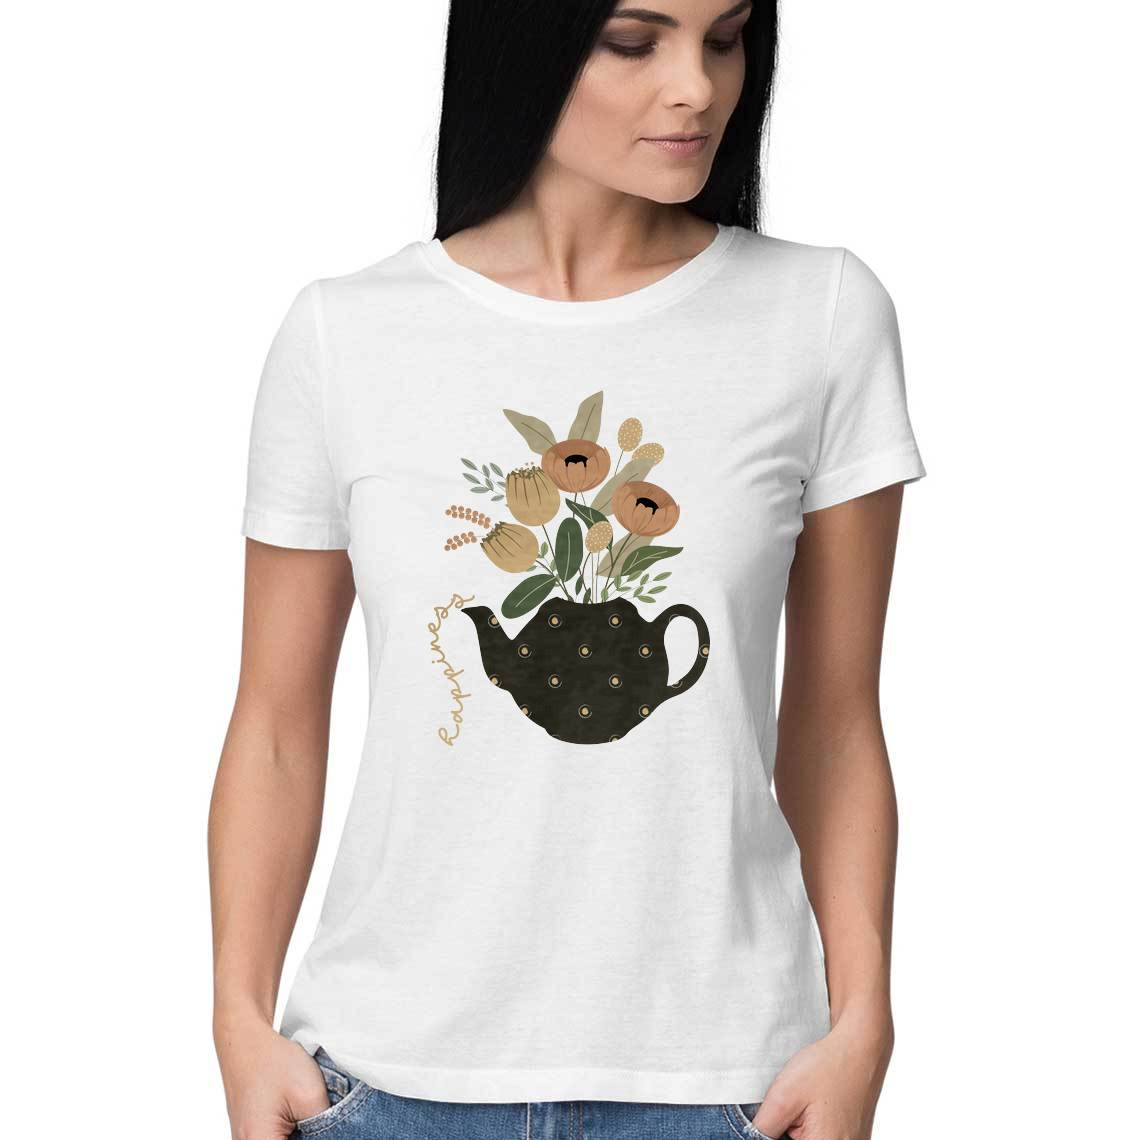 Happiness Teapot Women's Tshirt - The Print Route